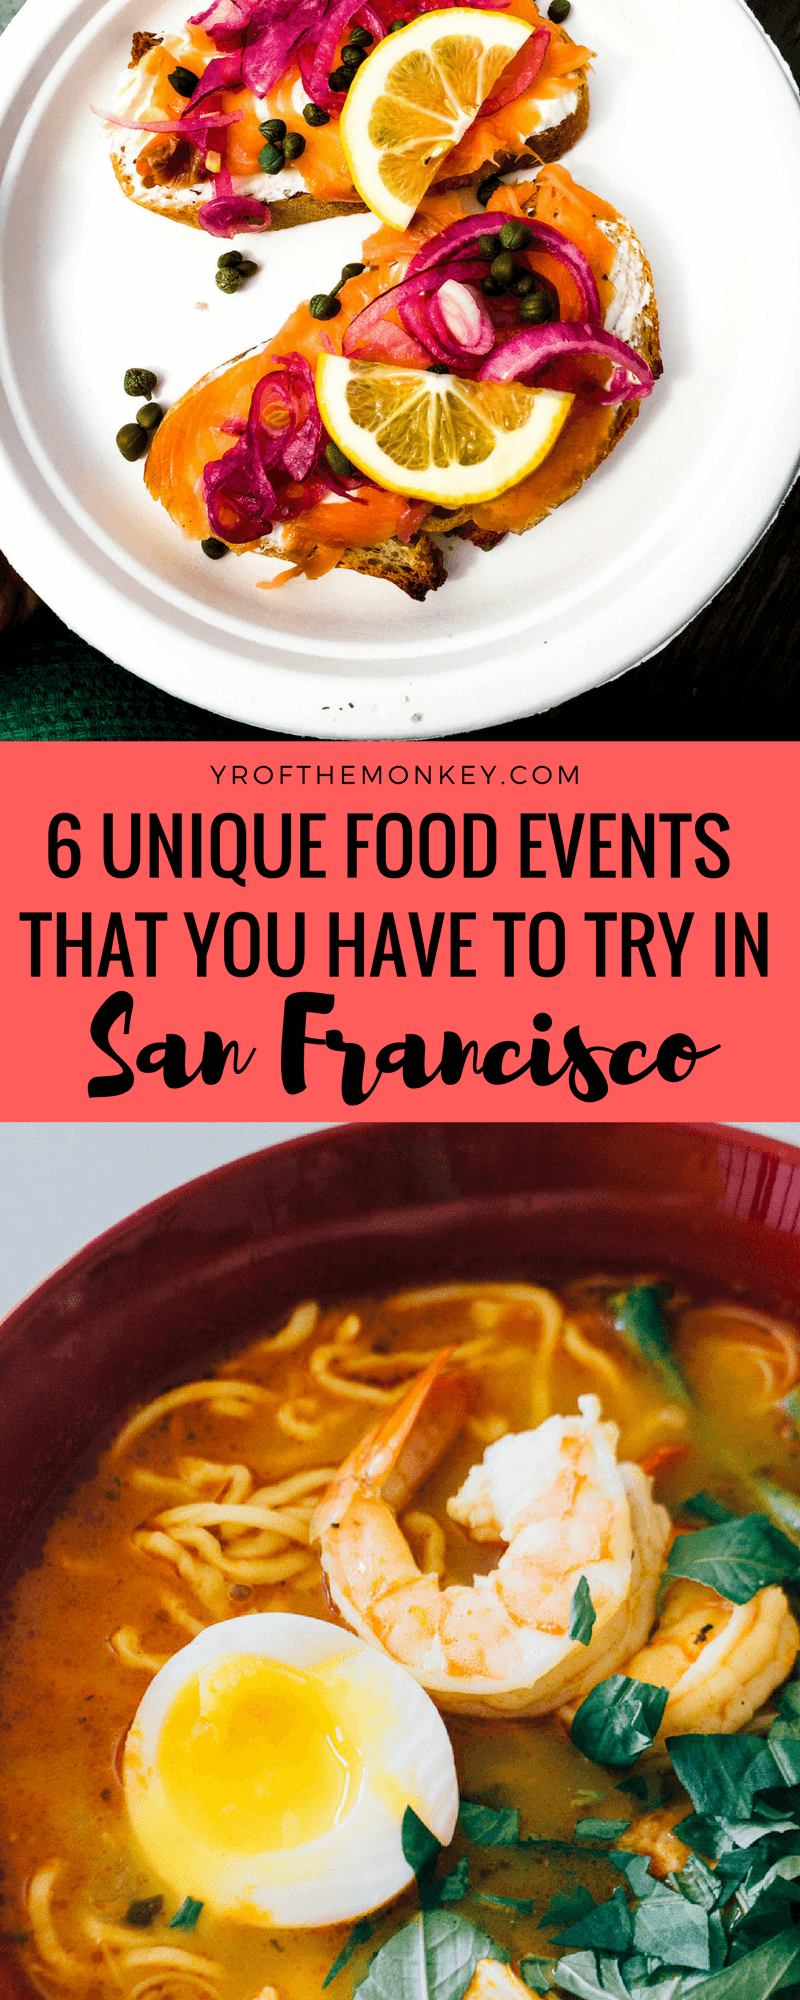 Unique eats San Francisco is your guide to 6 unique food events in the city which goes beyond SF restaurant reservations. A resident foodie's guide, this post is about San Francisco alternate dining with food tours, social dining, farmers markets, food halls, food courts pop-up restaurants and social dining startups. SF dining, San Francisco restaurants, best food San Francisco, must eat San Francisco, California , USA, Where to eat in San Francisco